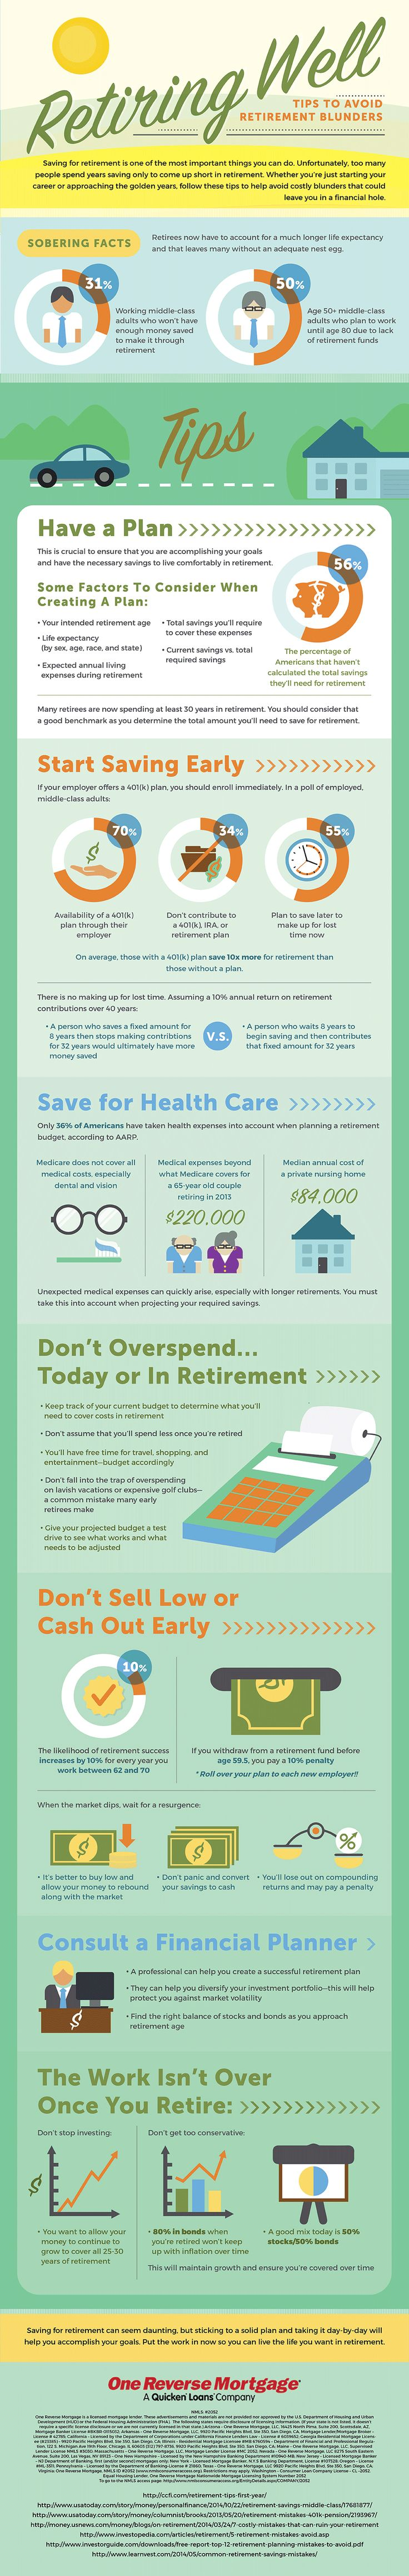 Retiring Well Tips To Avoid Retirement Blunders #infographic